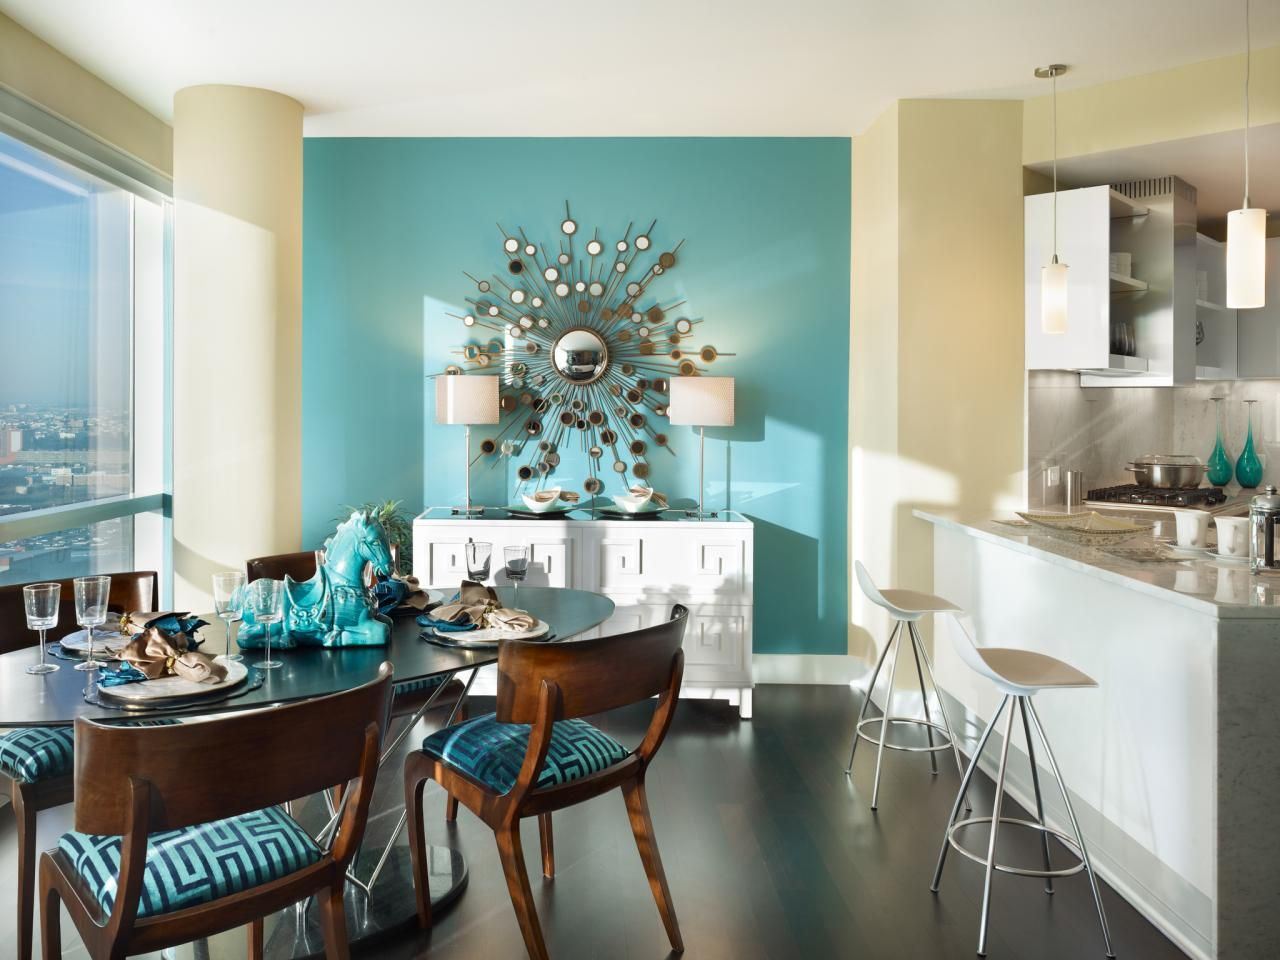 Pin On Paint #turquoise #living #room #decor #ideas